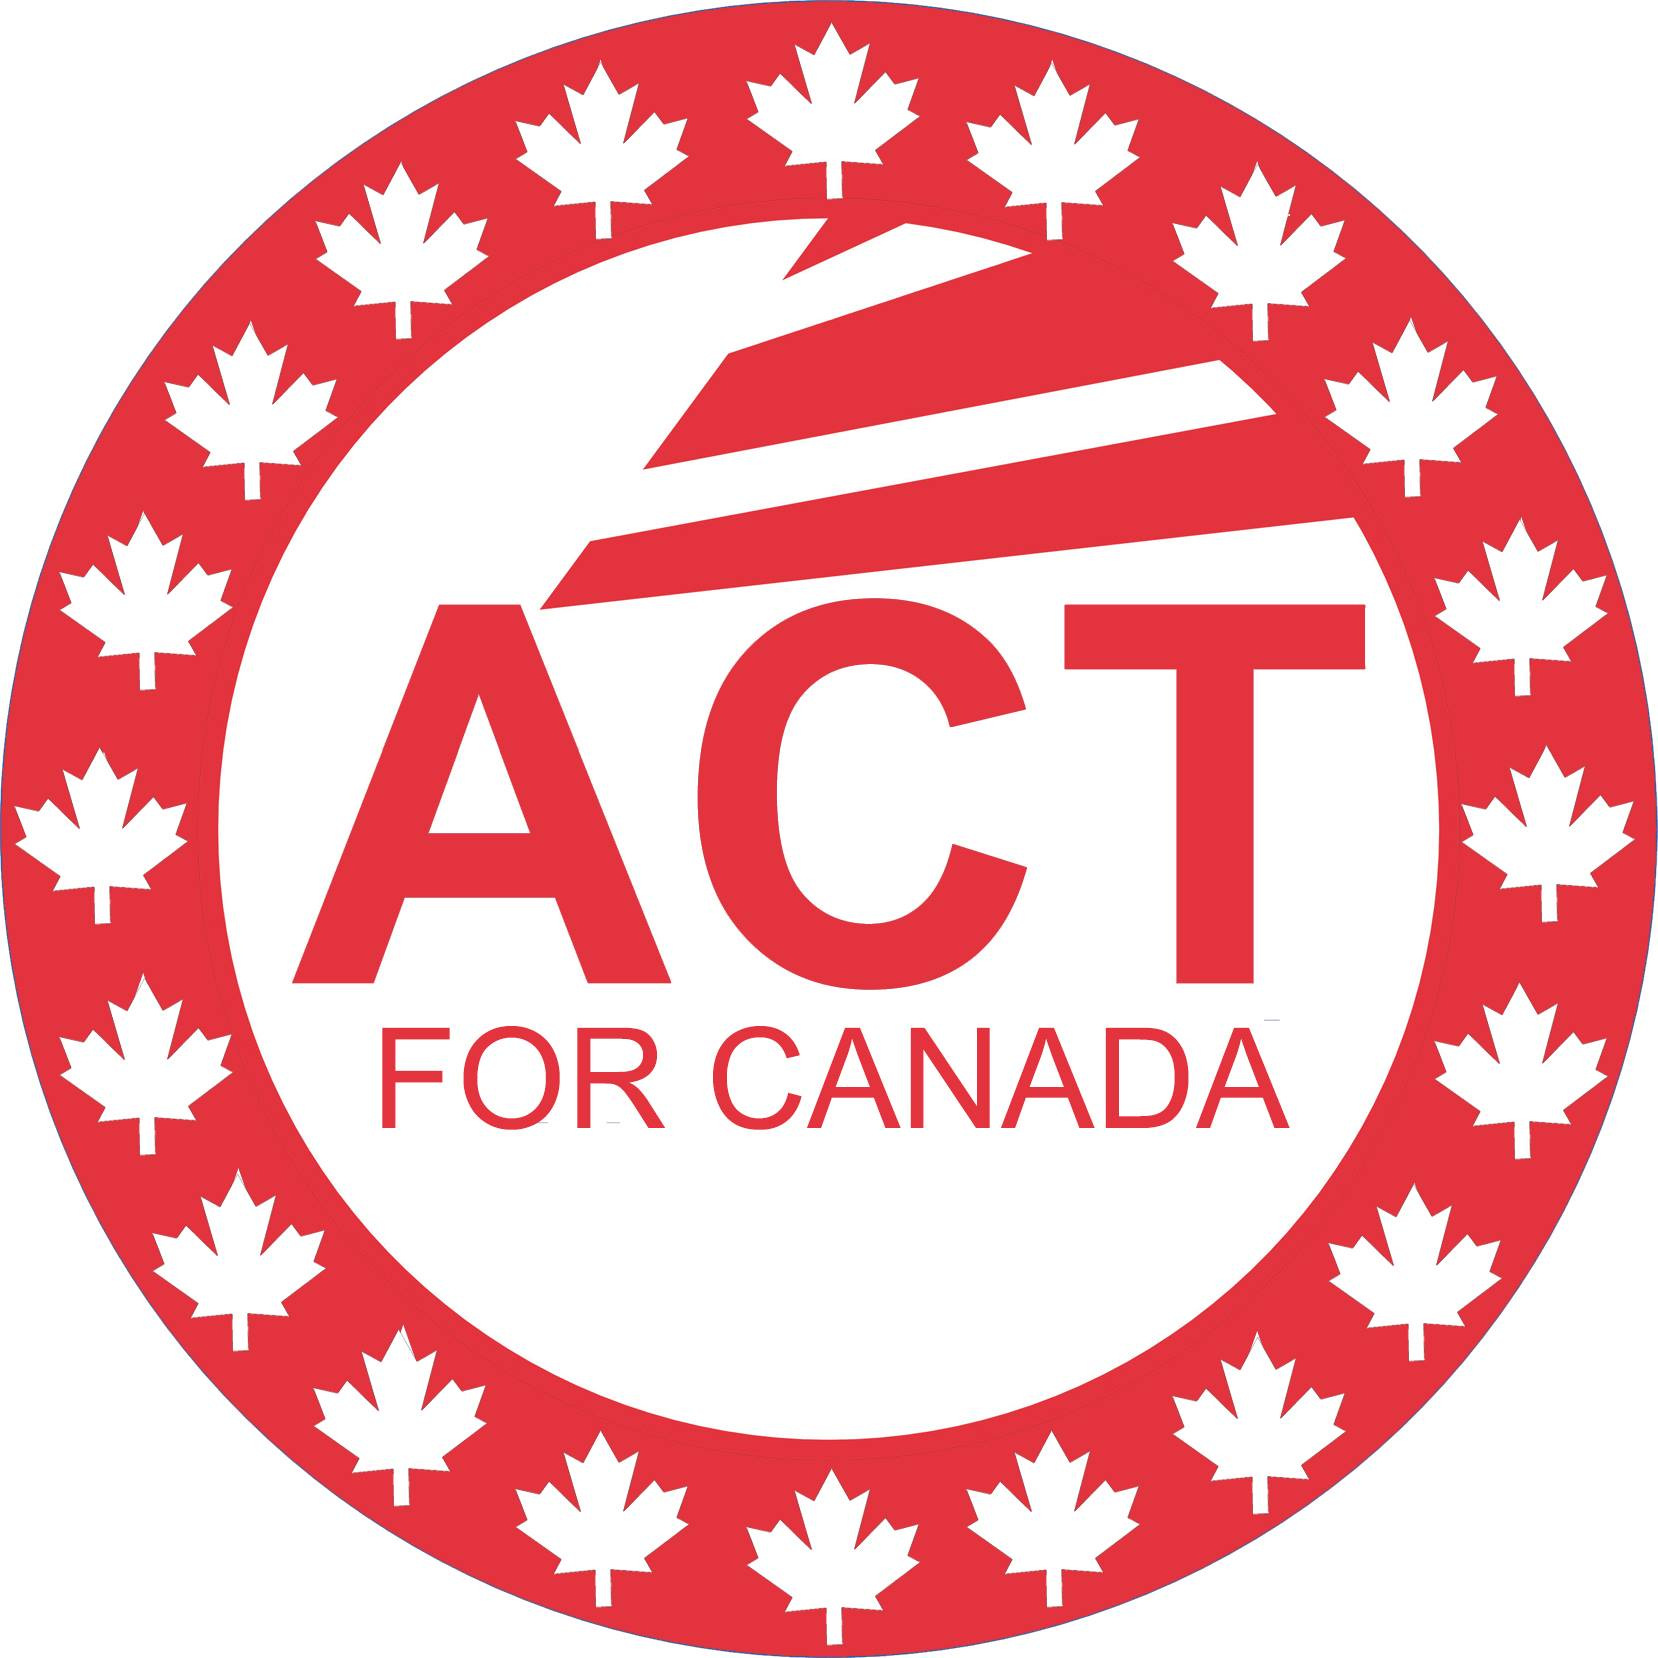 Act for canada